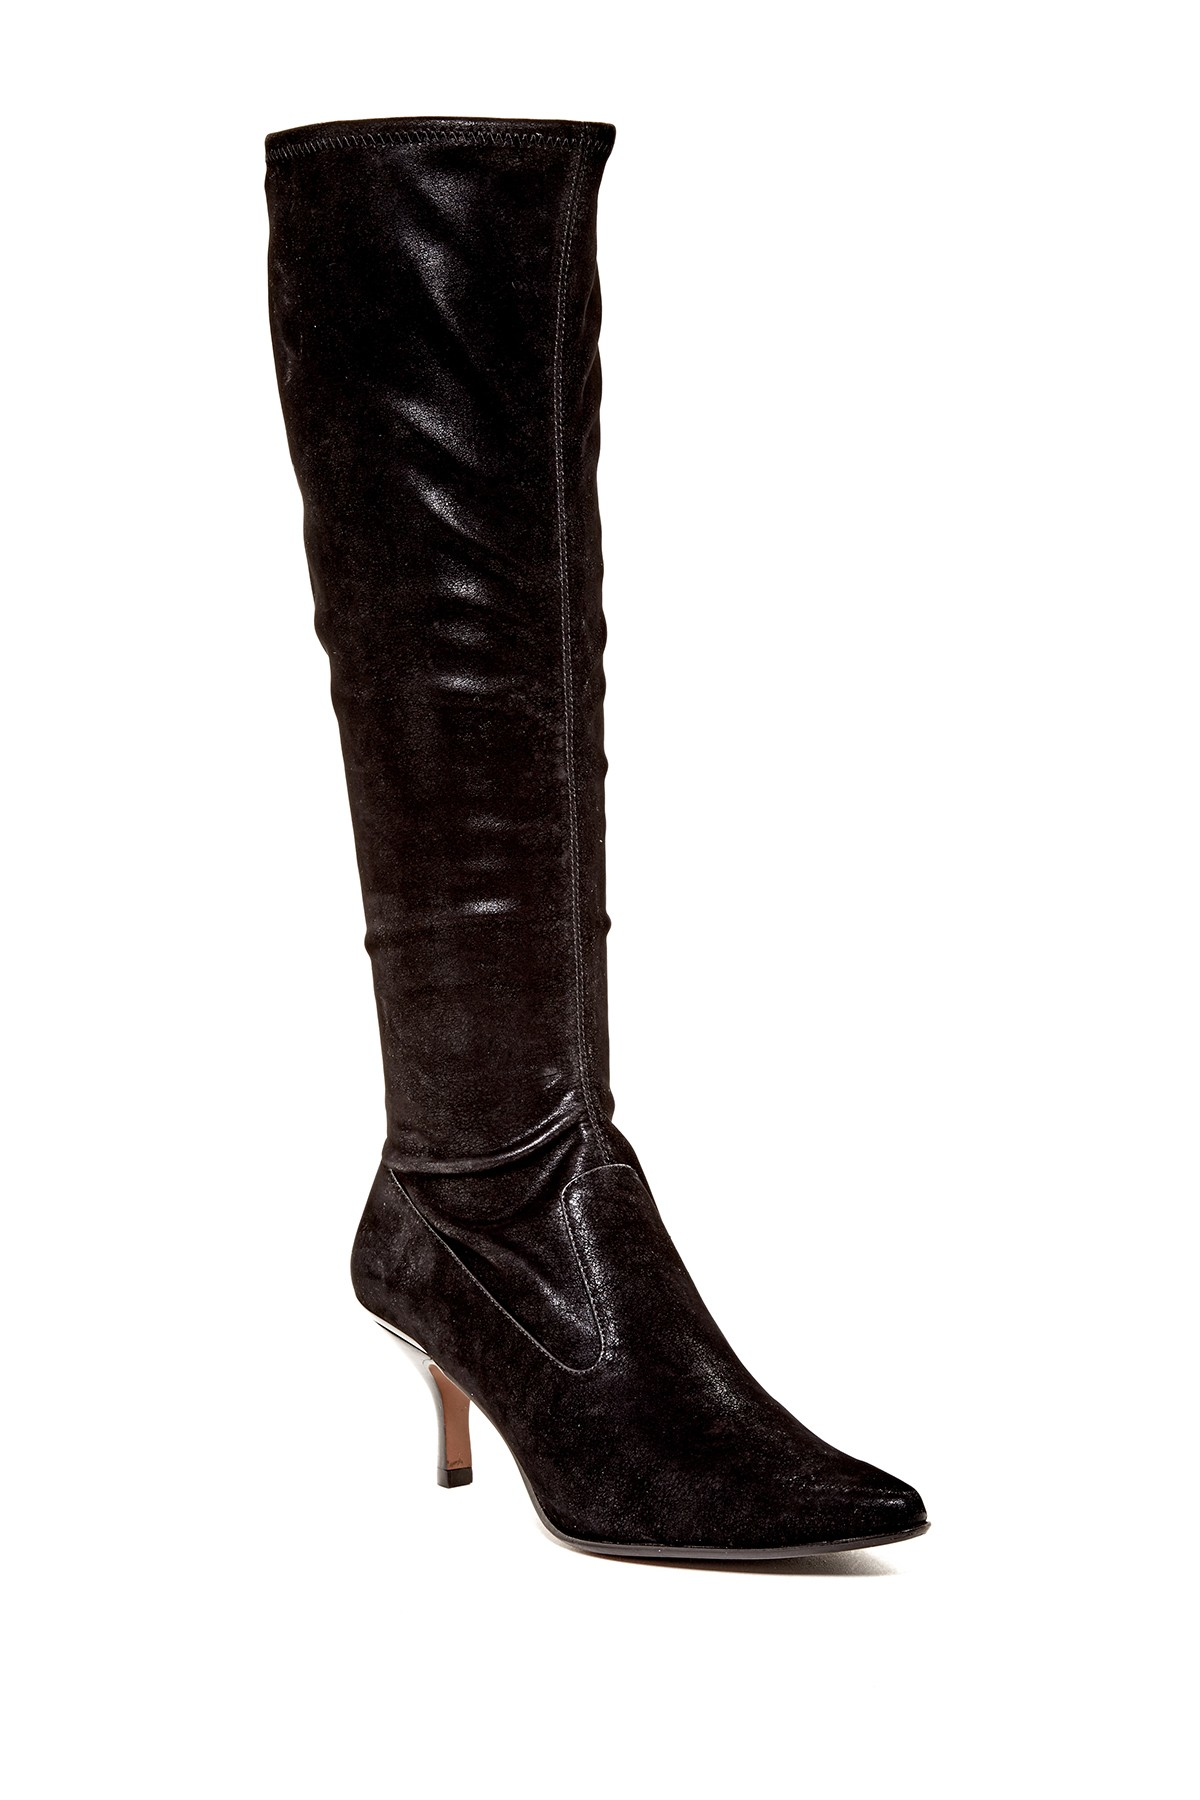 Donald J Pliner Nelly High Boot In Black Lyst